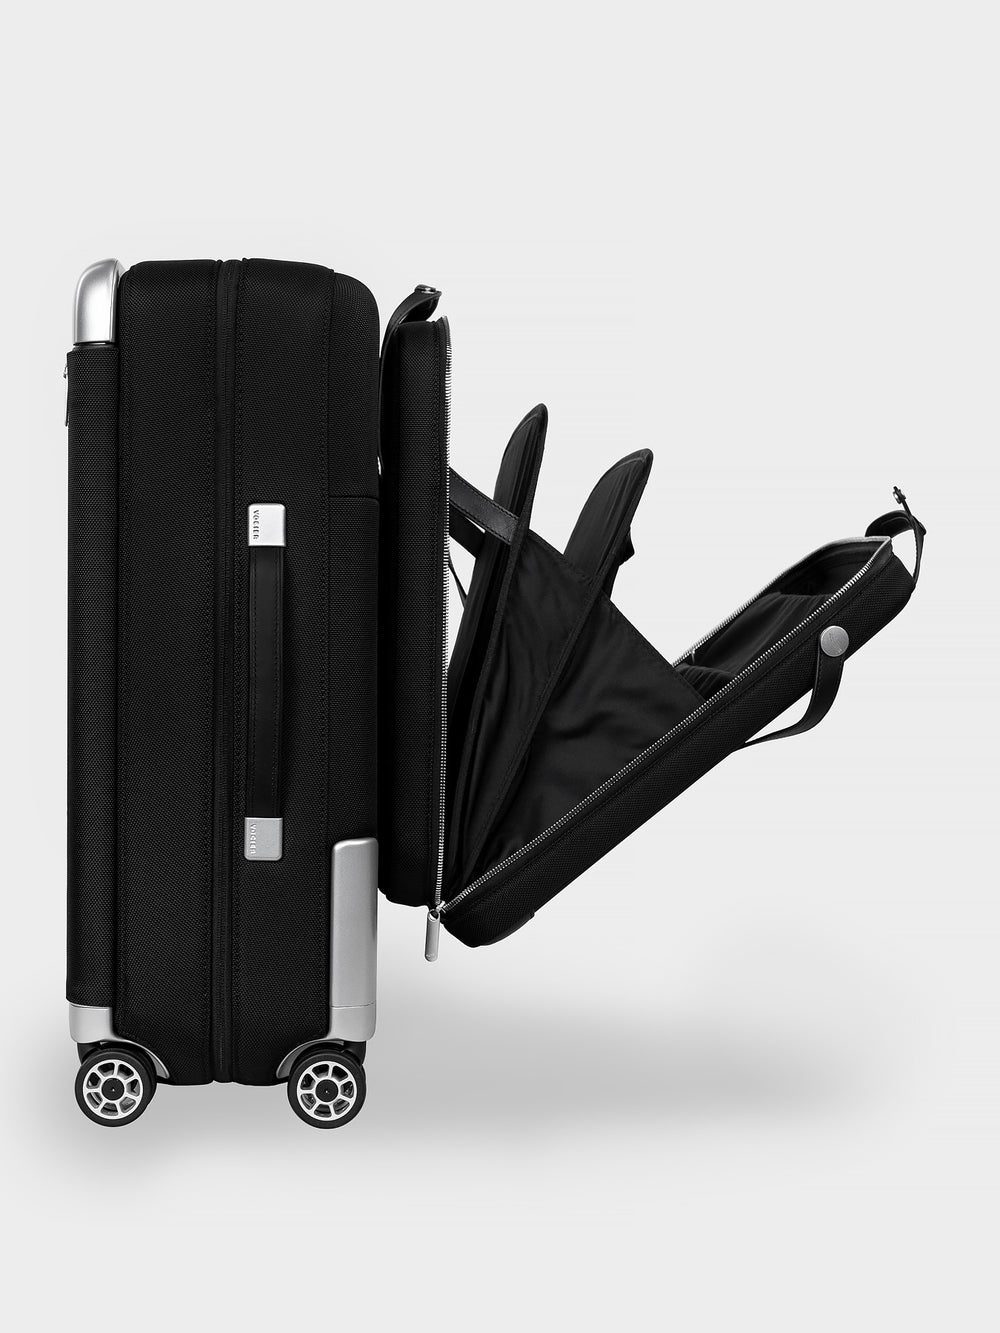 avant luggage with attachable briefcase